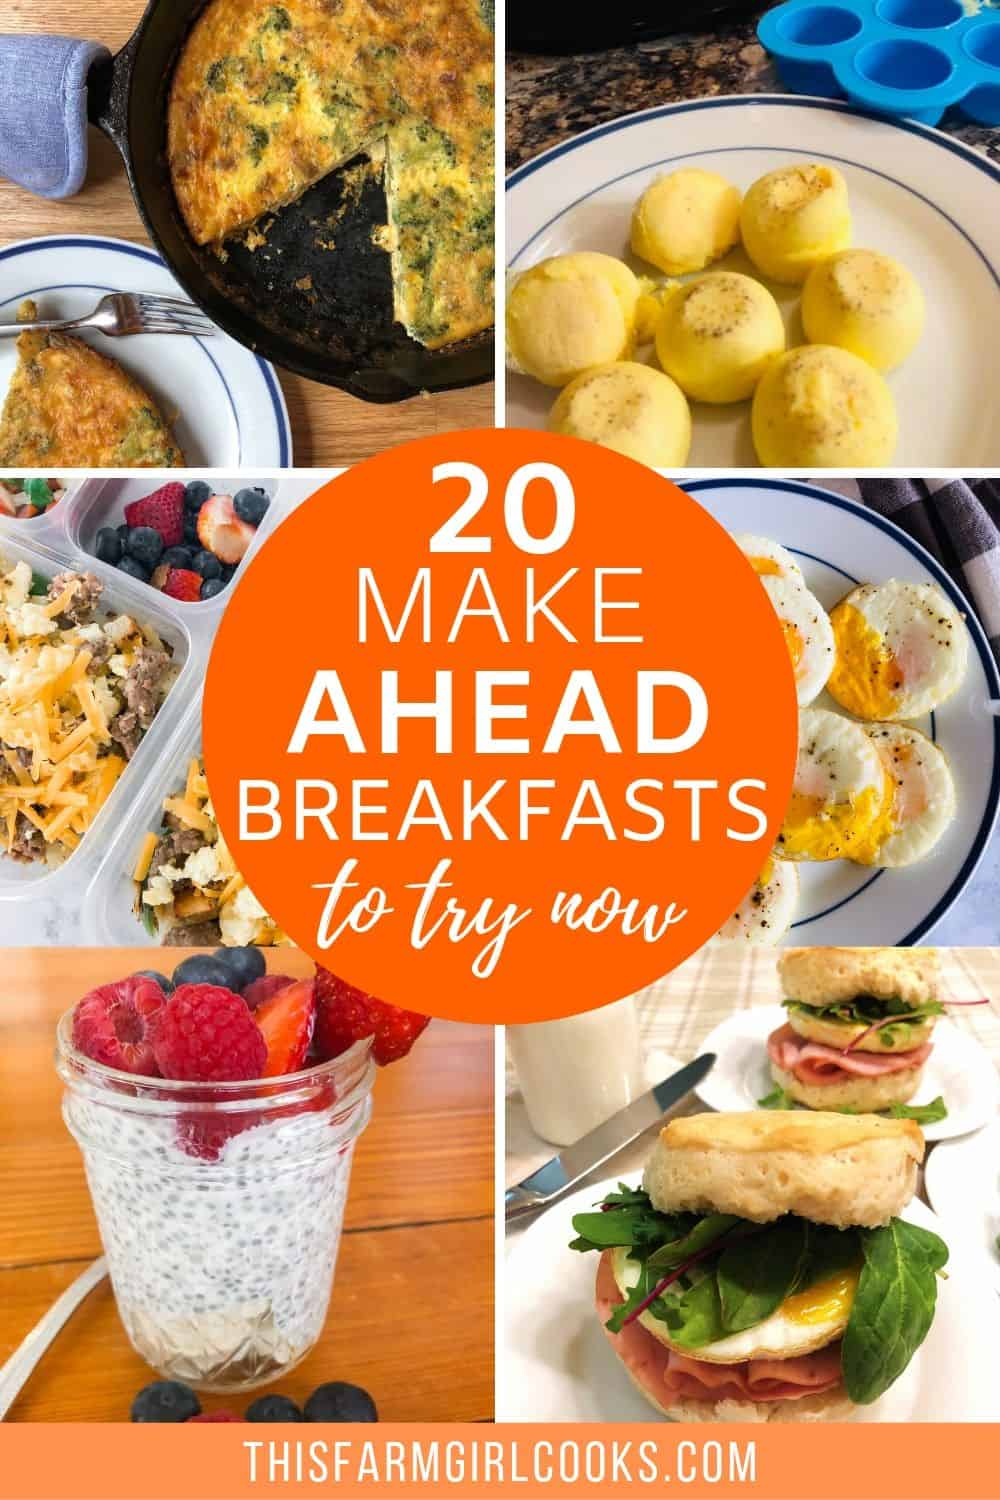 20 Make Ahead Breakfast Ideas That Will Change Your  Mornings